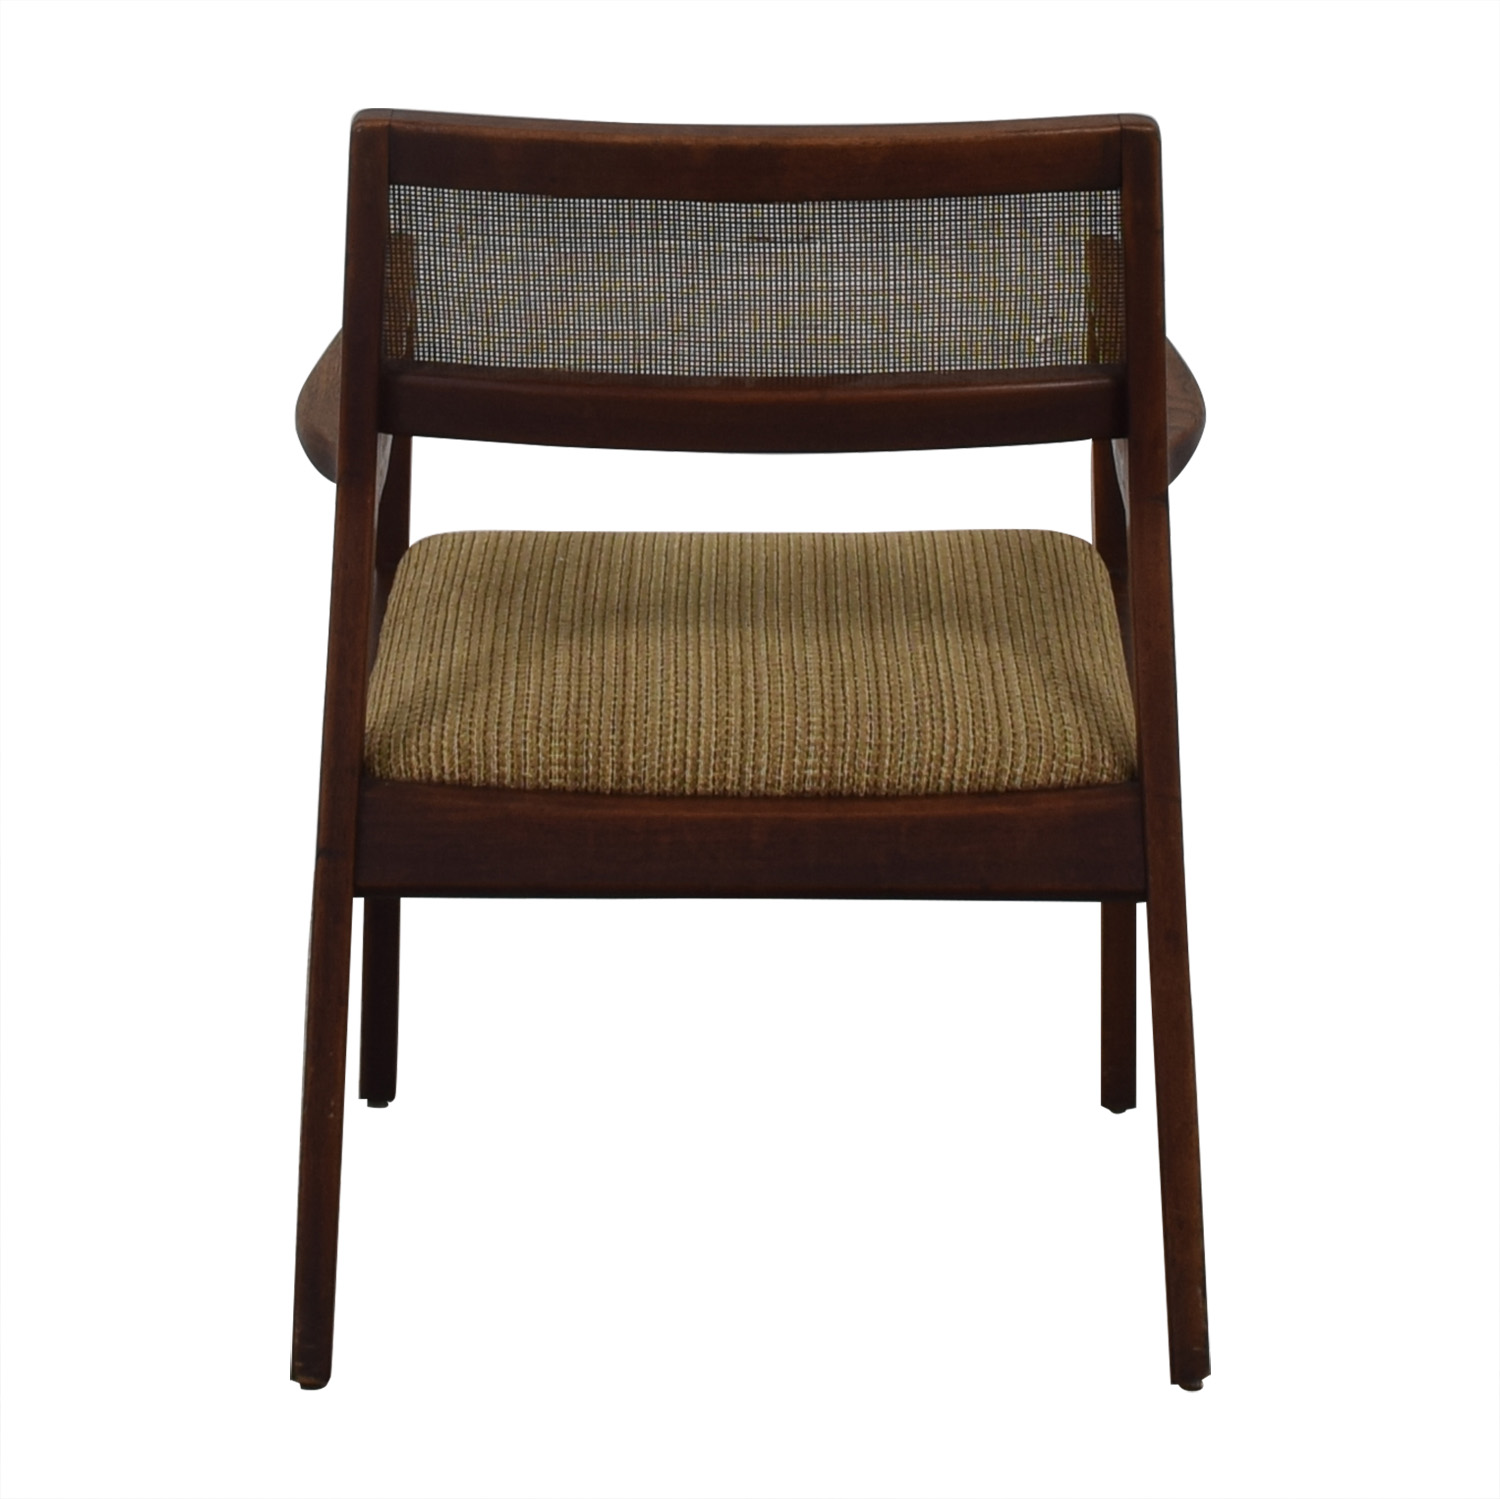 Mid Century Modern Accent Chair for sale